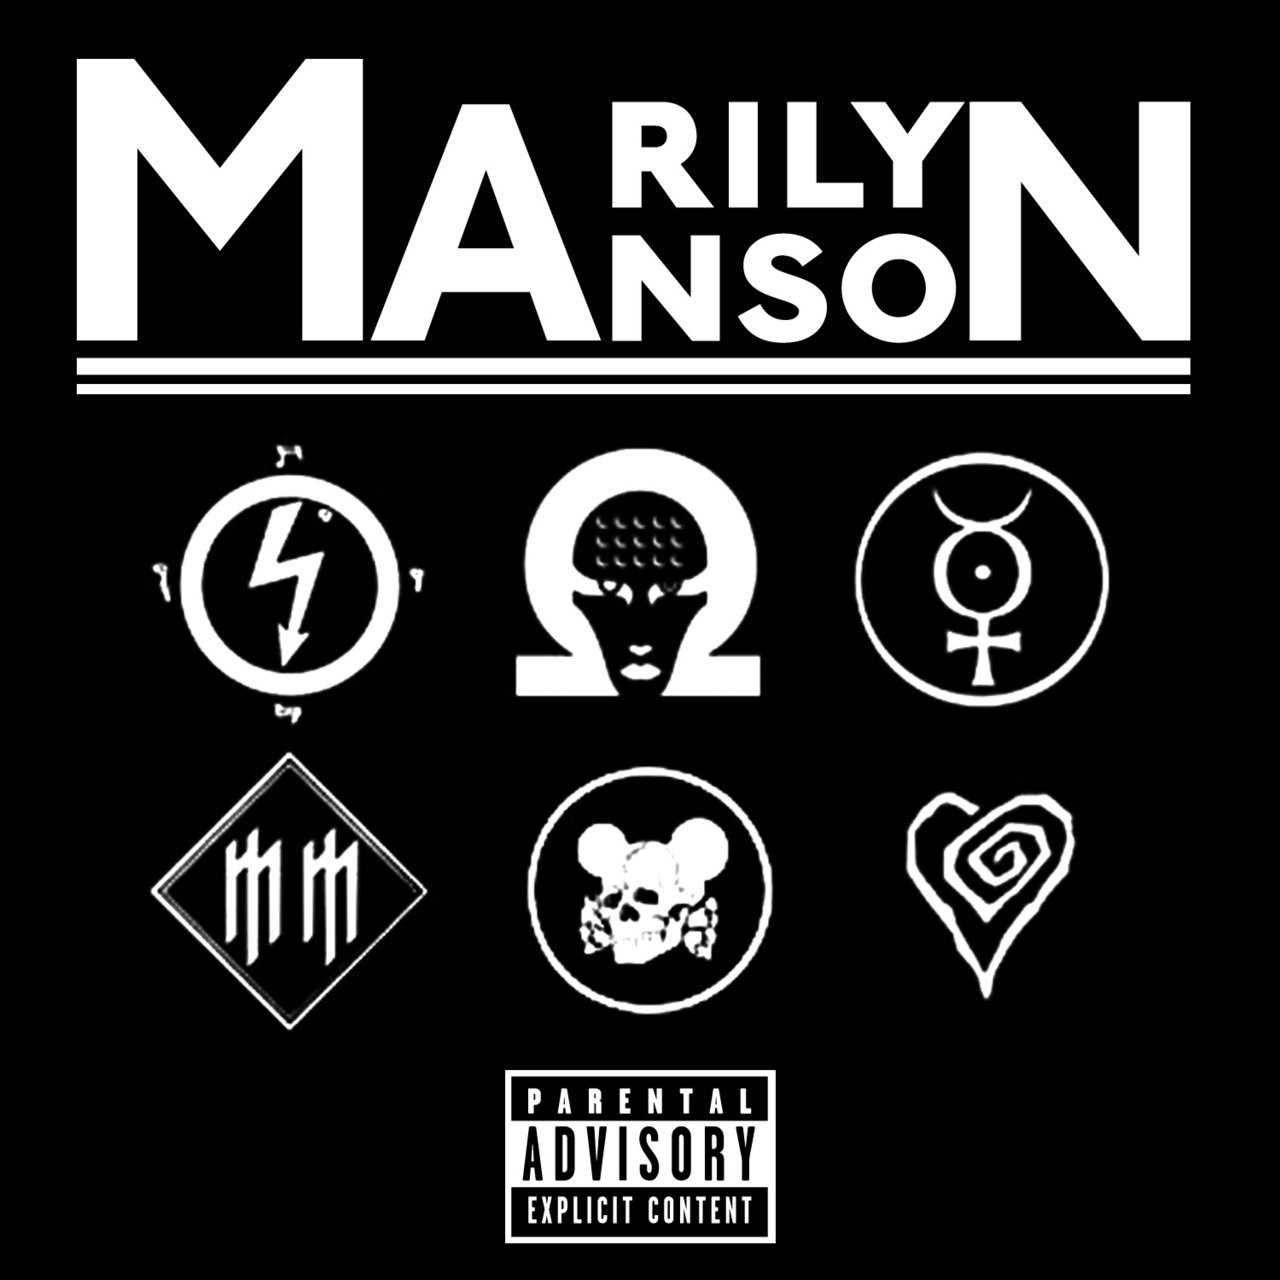 Tidal listen to the best of marilyn manson vol 2 on tidal the marilyn manson collection buycottarizona Images